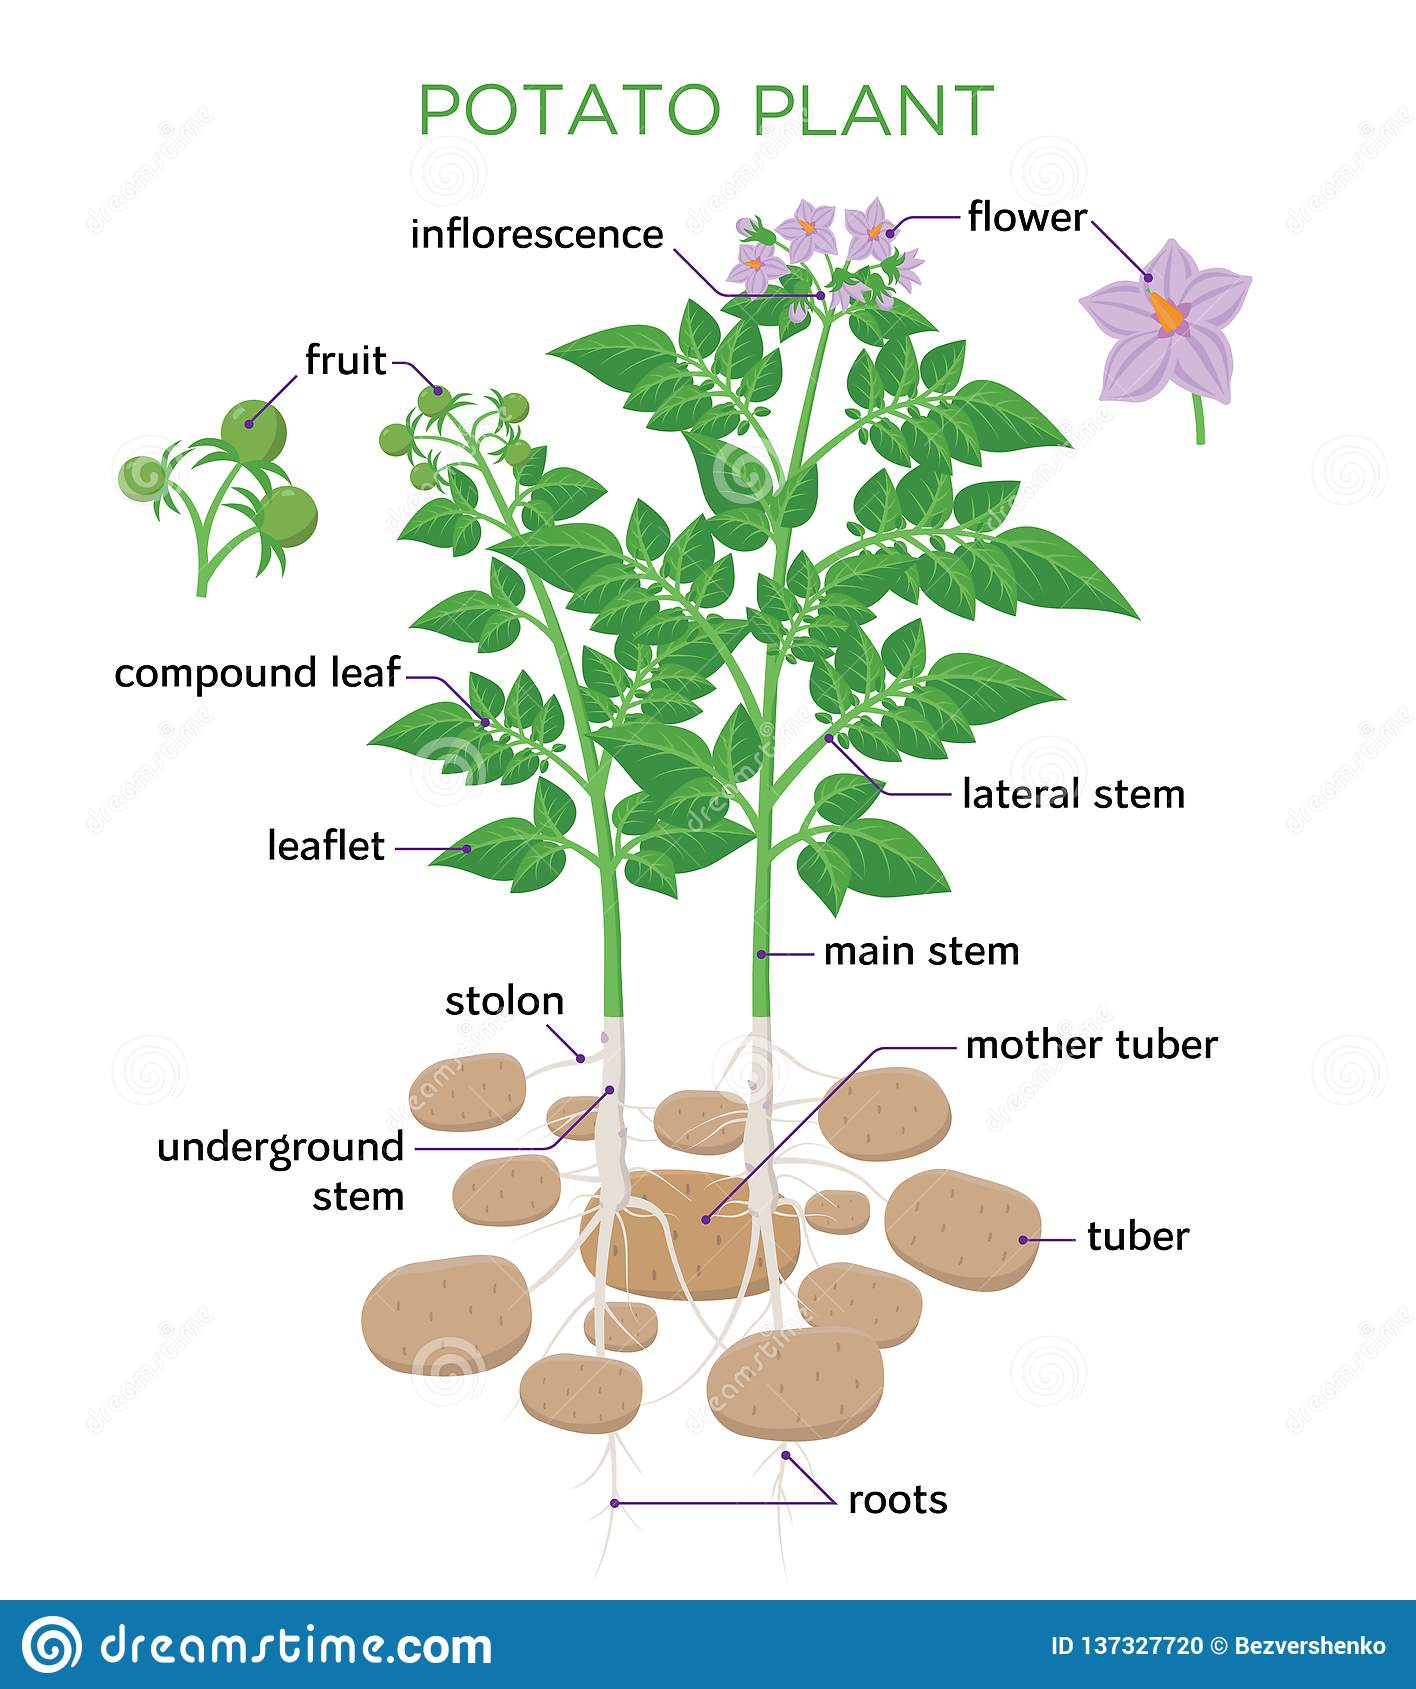 potato plant vector illustration in flat design  potato growth diagram with  parts of plant,